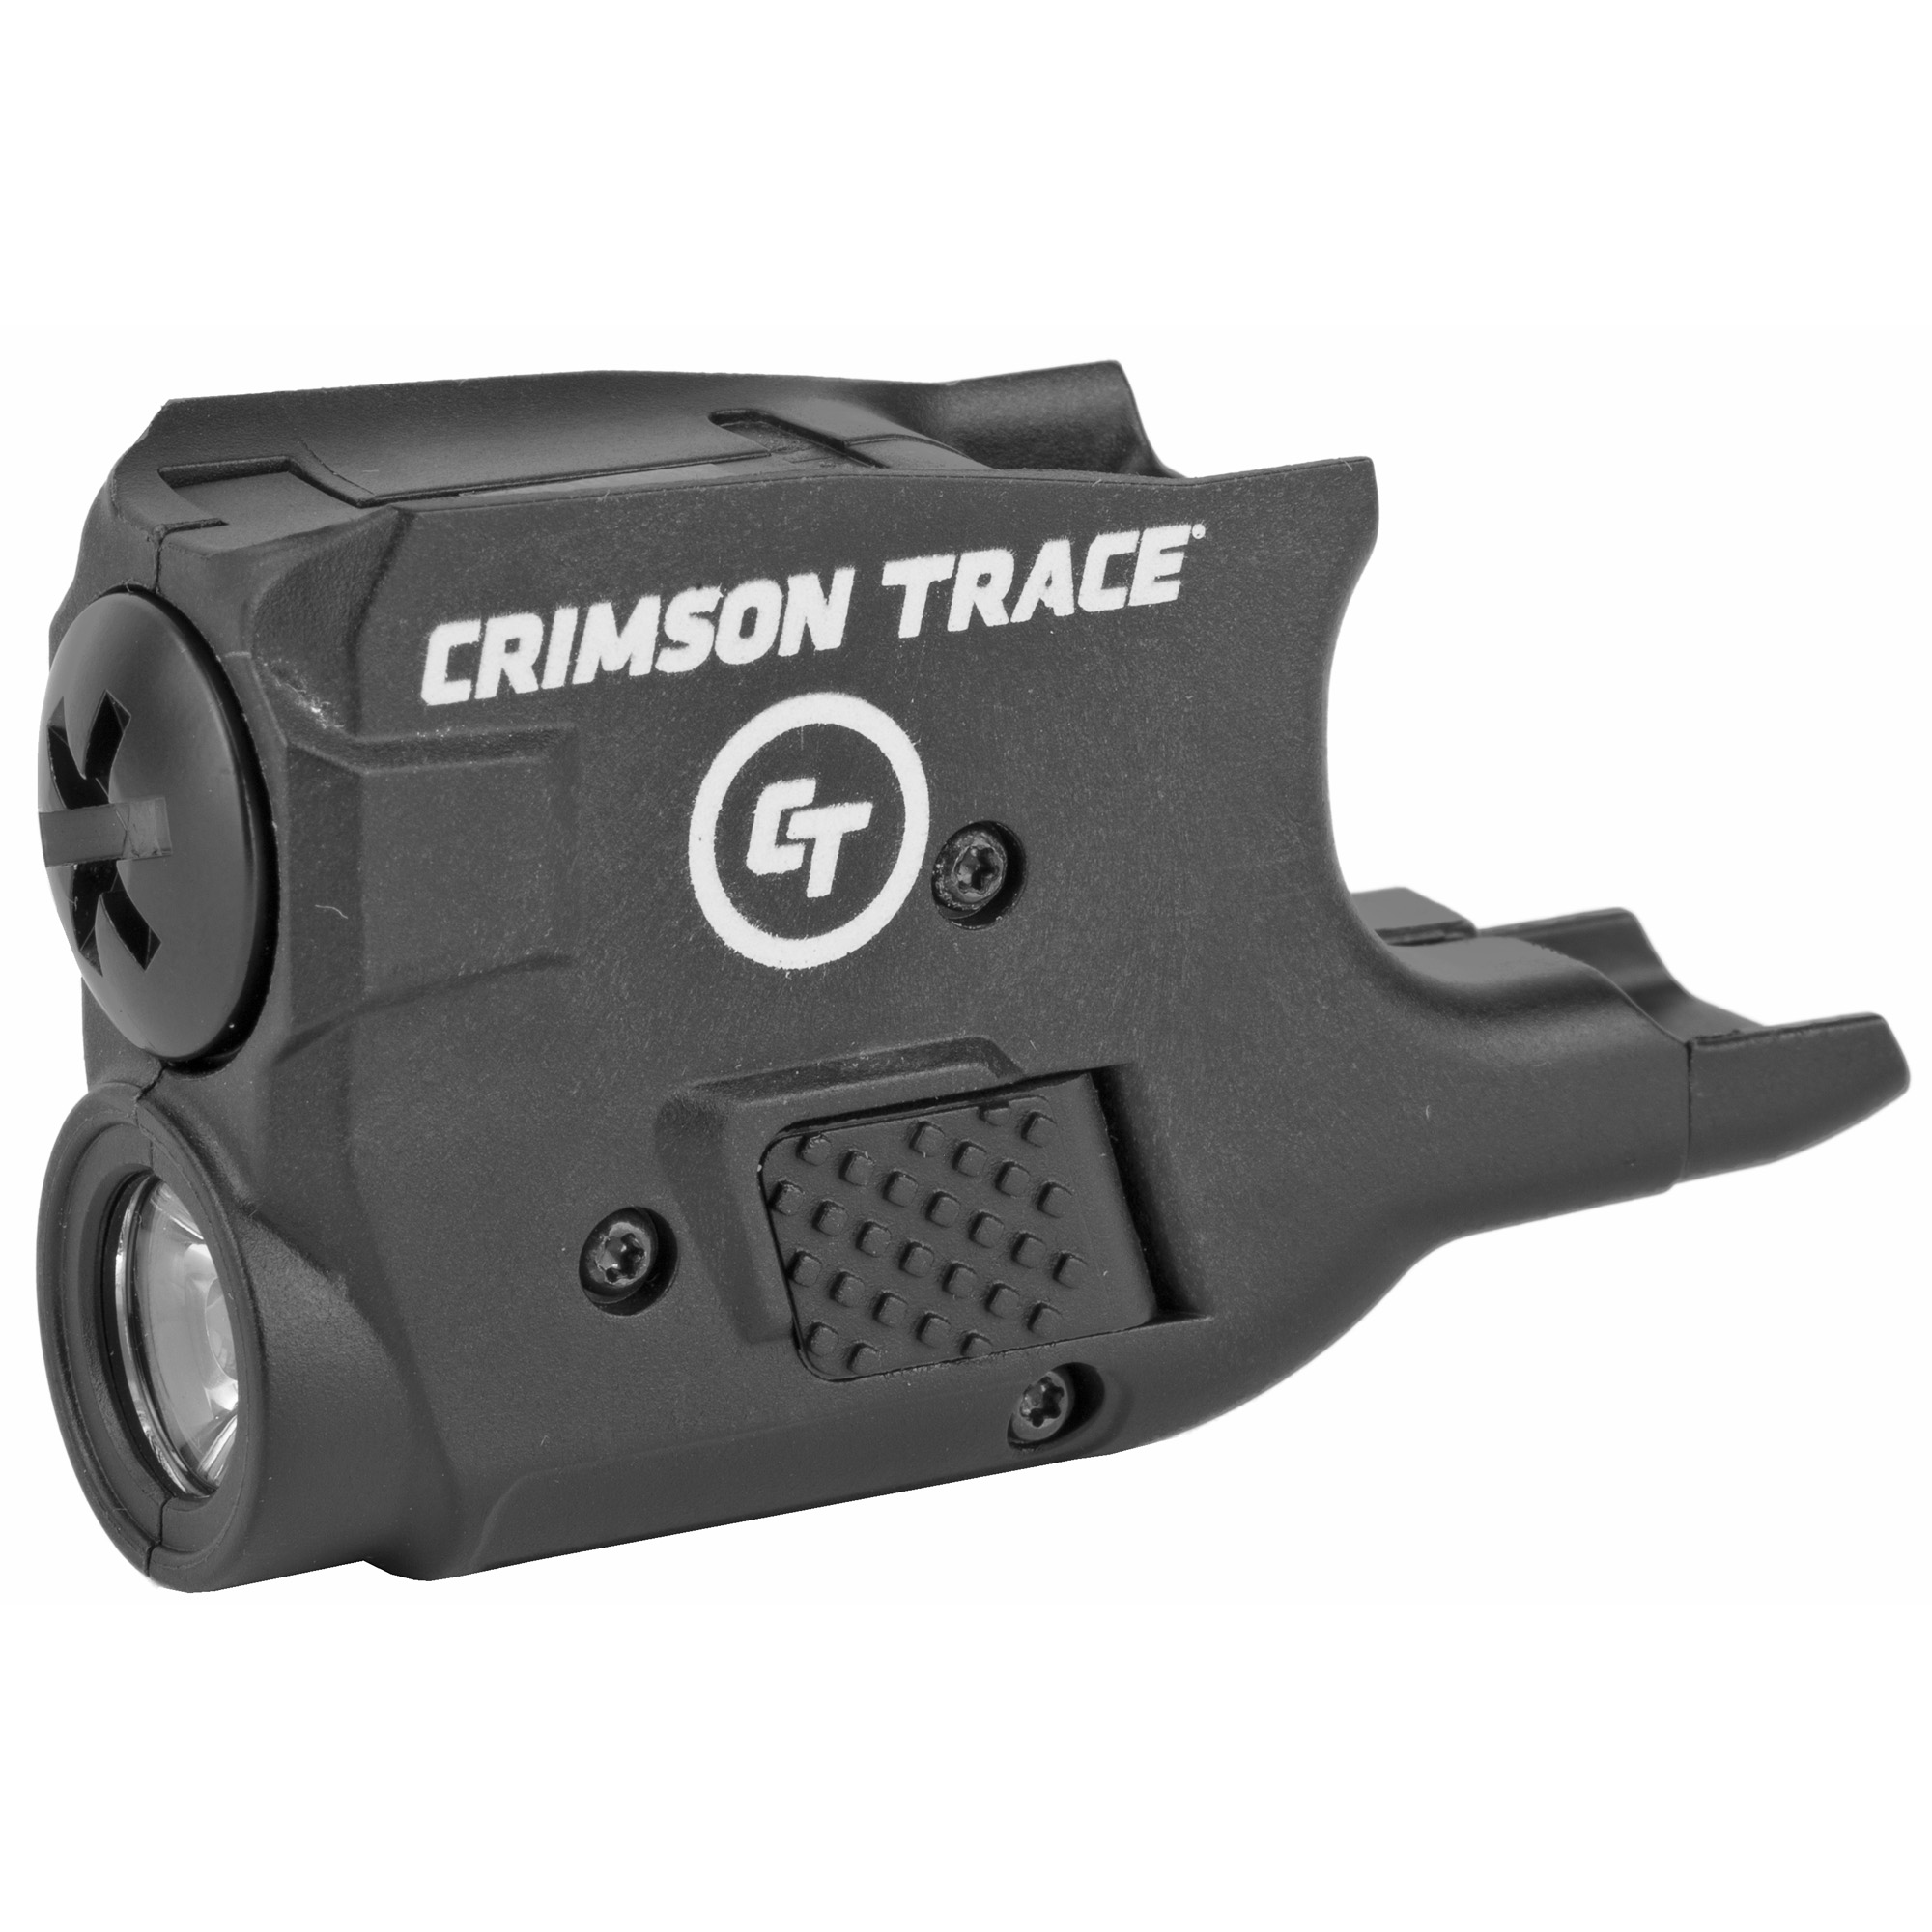 """The LTG-777 Lightguard(TM) is a 110 Lumen LED White Light designed to securely fit around the trigger guard of GLOCK(R) 26"""" 27 & 33 pistols. Featuring ambidextrous Instant Activation(TM) with Constant and Momentary modes"""" the LTG-777 offers over one (1) hour of illumination with two (2) 1/3N batteries (included). With ruggedized polymer construction and a rapid change battery cap"""" this tactical light offers effective illumination for G26"""" G27 and G33 owners. A best-in-class weapon mounted light from the brand you trust for personal protection optics."""